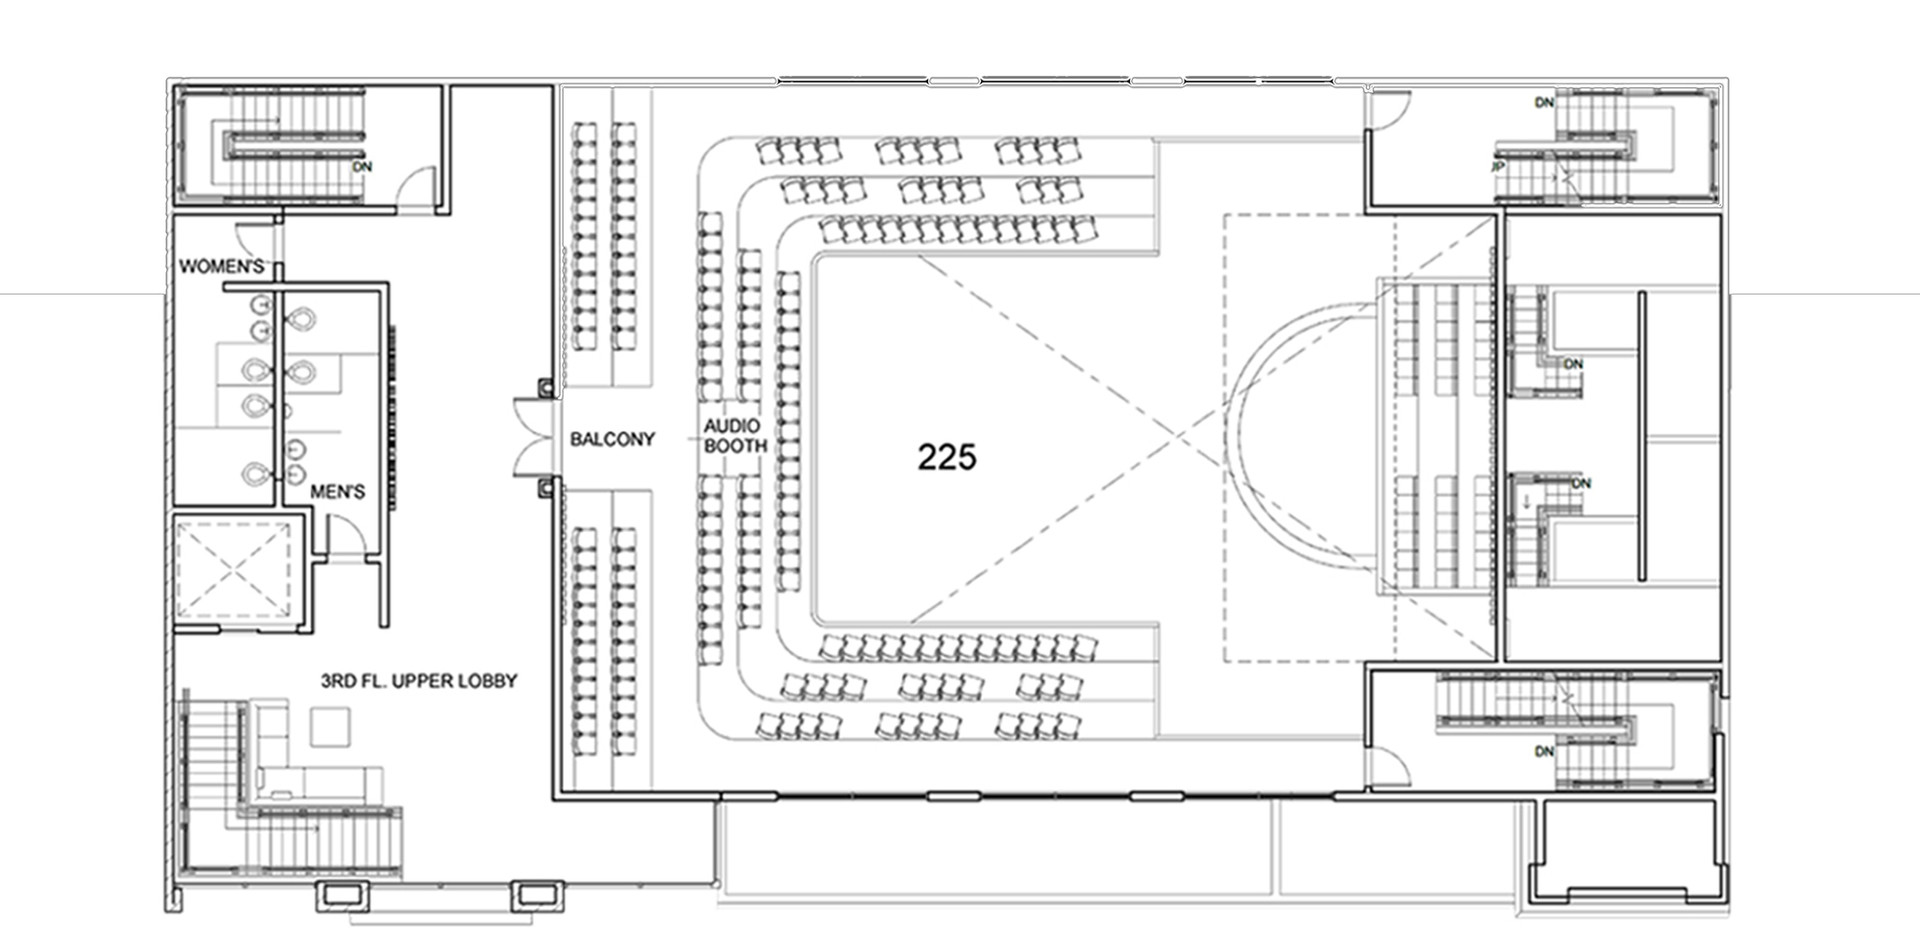 Sanctuary Church 3rd Floor Plan